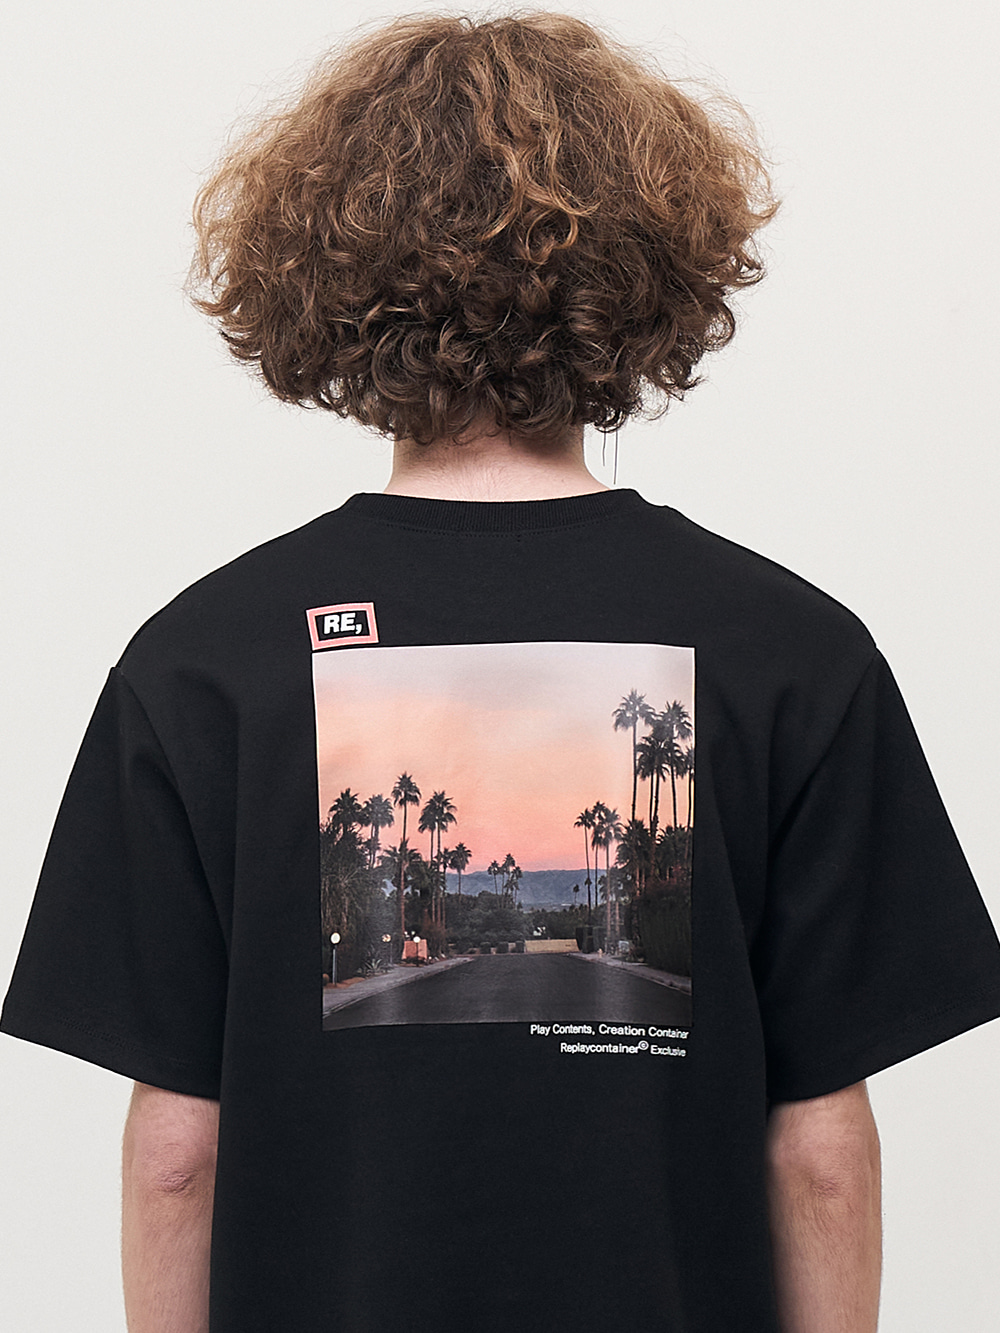 RE square black campaign half tee (sunset)